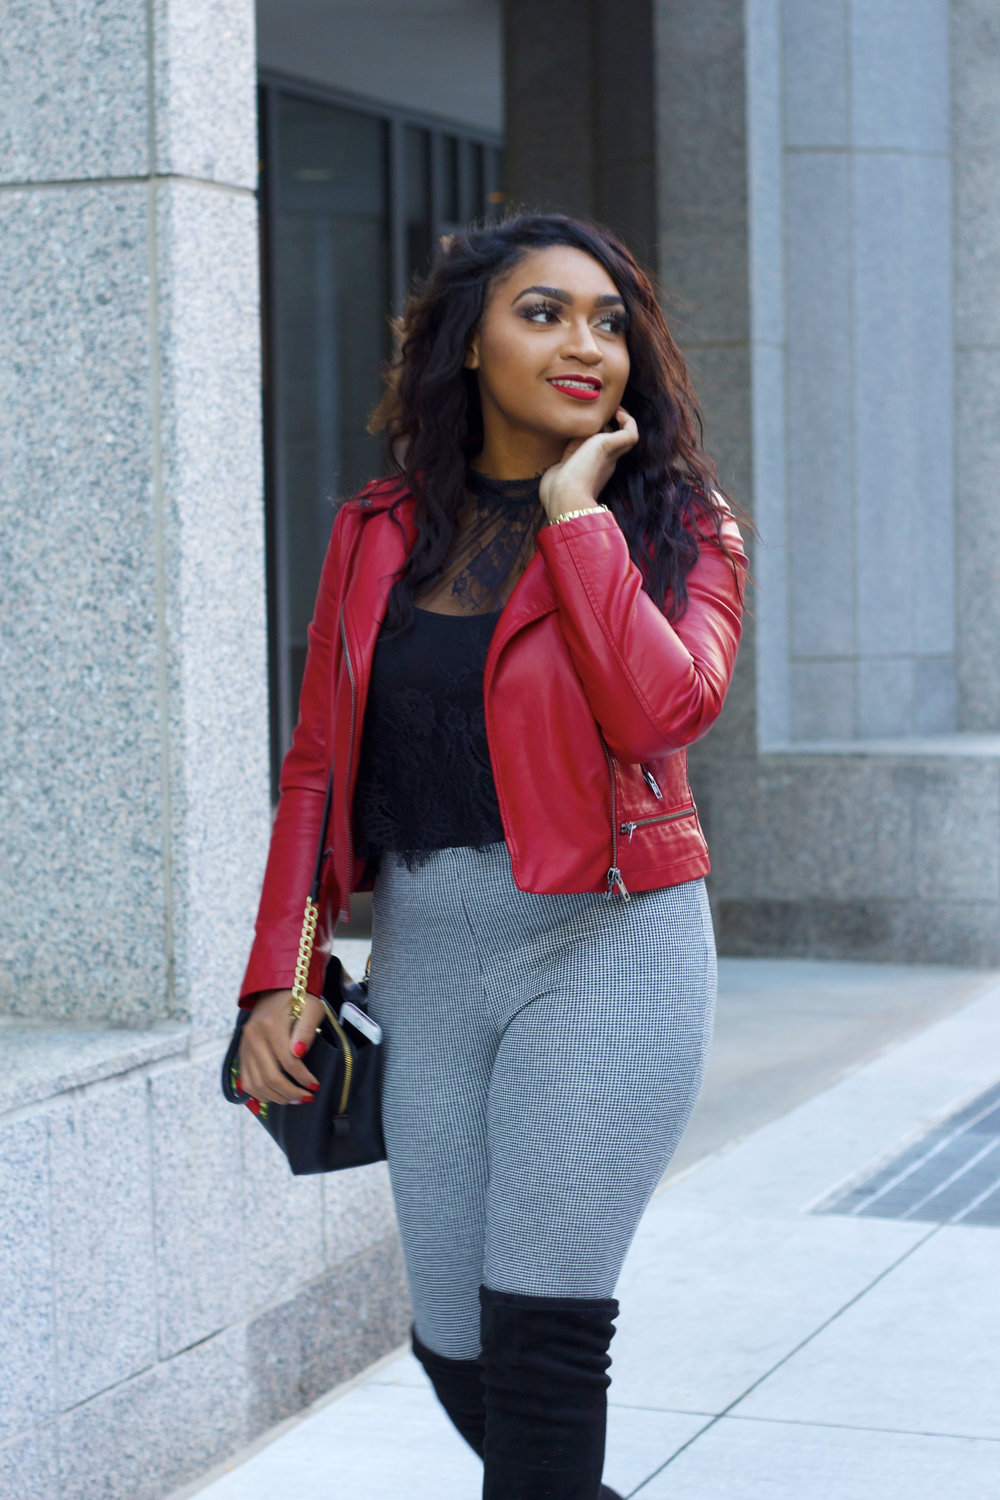 Forever21 red leather jacket on jasmine diane.jpg